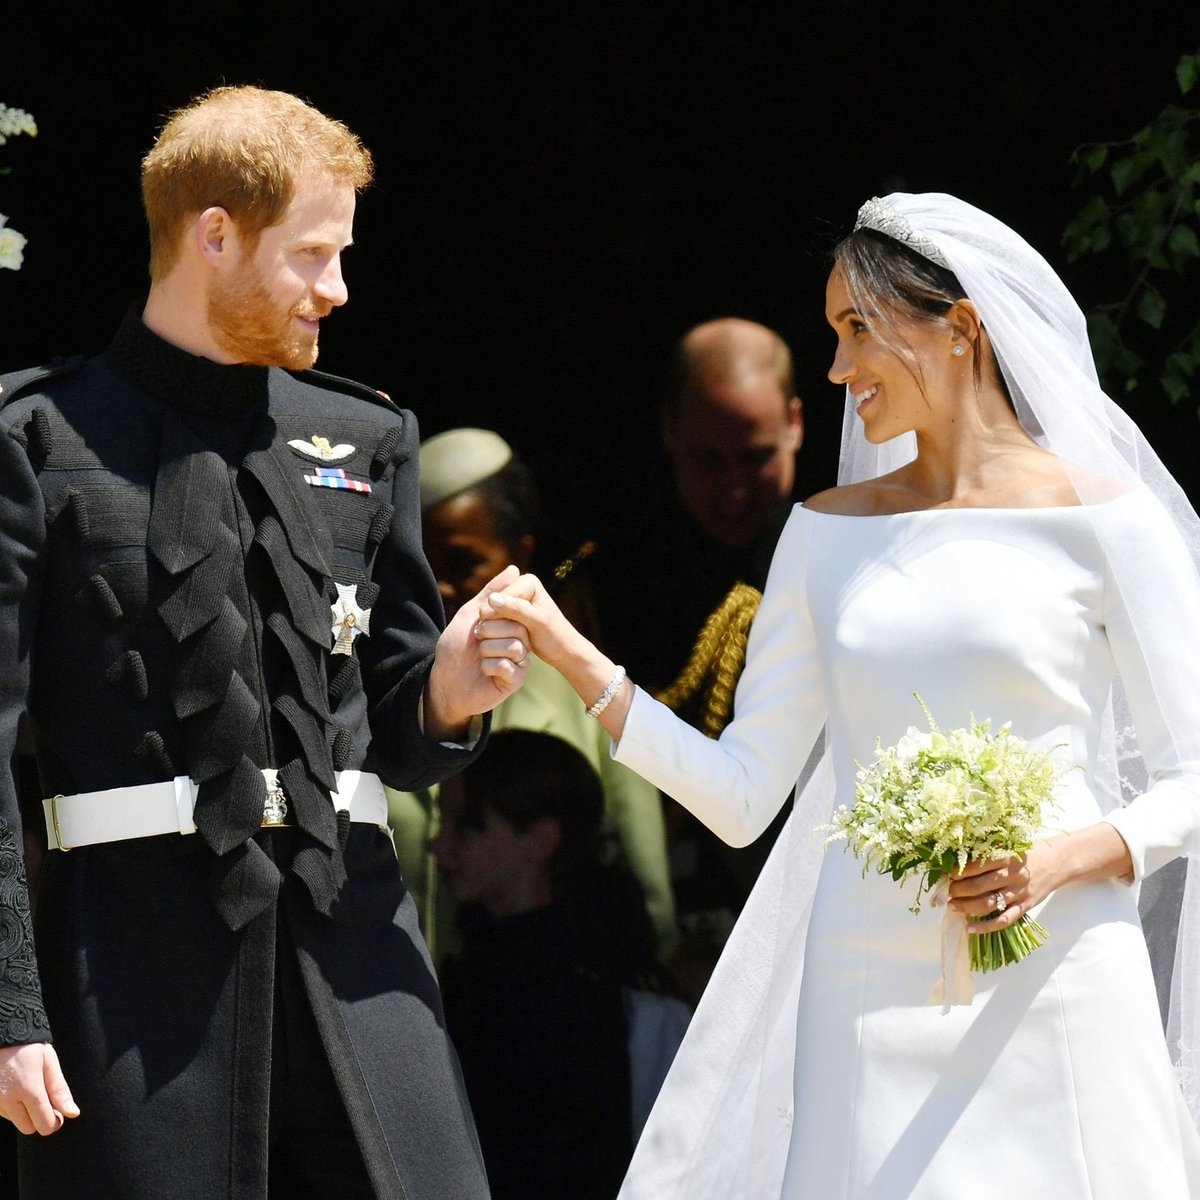 Episode 61 Out Now !! This week we have guest Dan Howell talking about the music scene, racism, white supremacy and the royal wedding.  Download link  http:// themarcjeffreypodcastshow.libsyn.com/racism-and-whi te-supremacy-feat-dan-howell-episode-61 &nbsp; …  #RoyalWedding2018  #WhiteSupremacy #racism #yannyorlaurel  #BritPodScene #libsyn #podbean #Spotify<br>http://pic.twitter.com/VFsynhXOLS